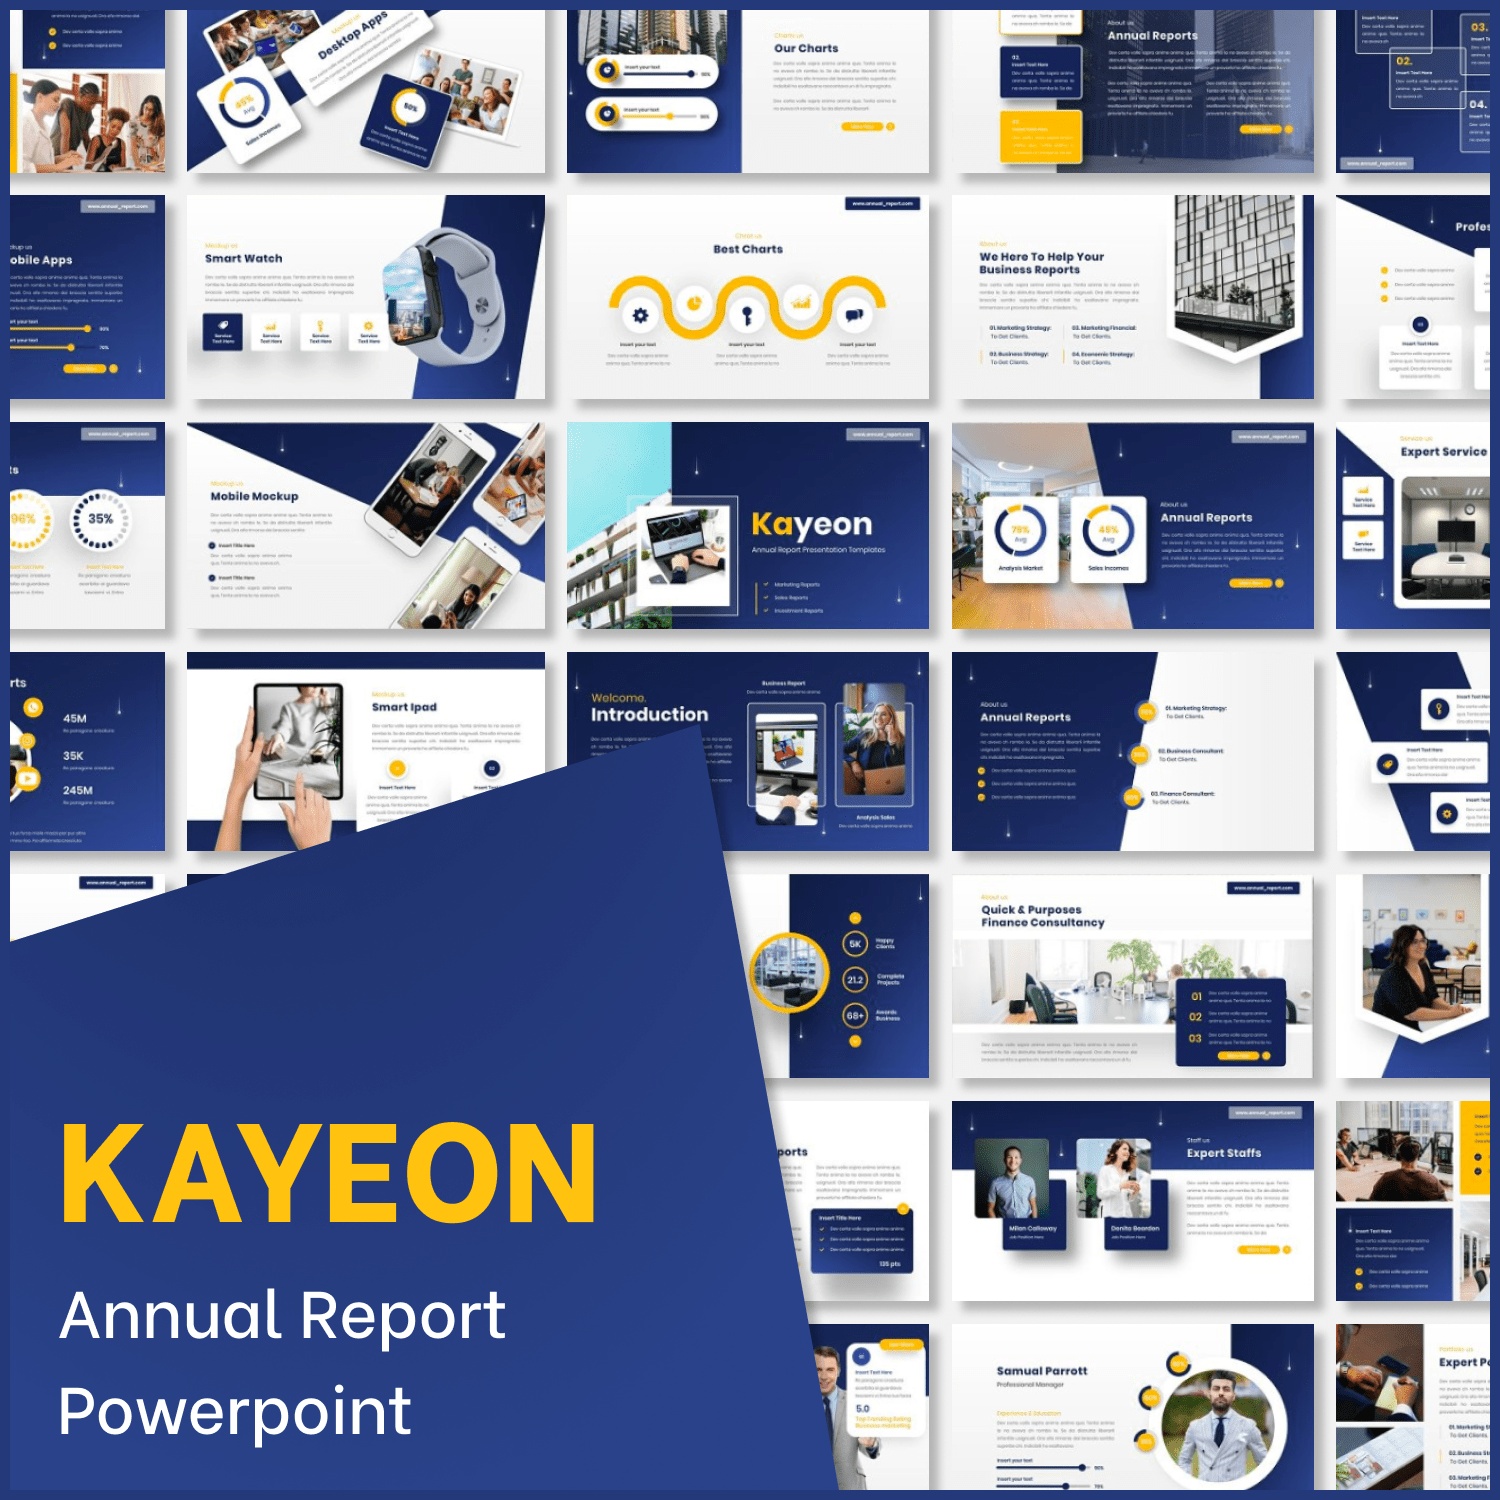 Kayeon - Annual Report Powerpoint main cover.